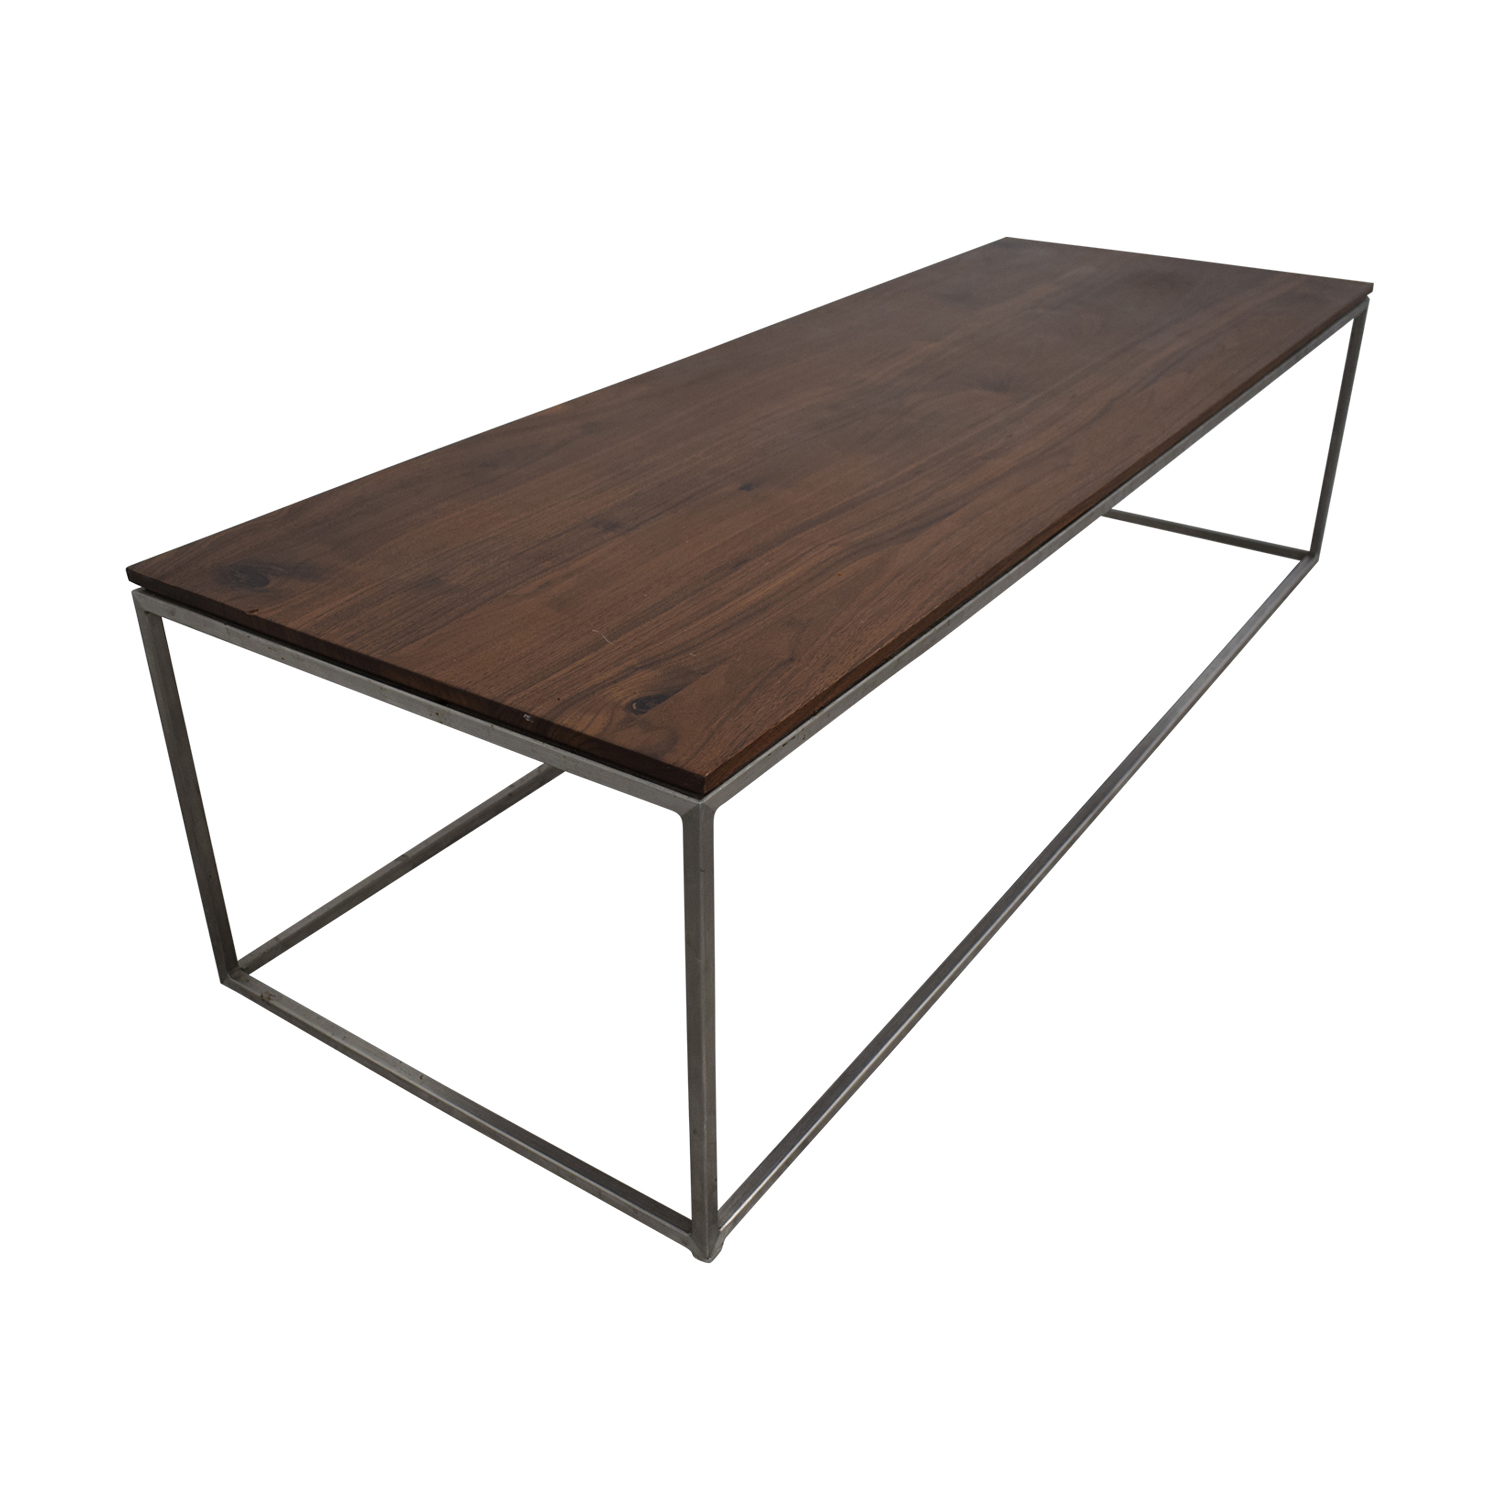 Crate & Barrel Crate & Barrel Frame Coffee Table Coffee Tables